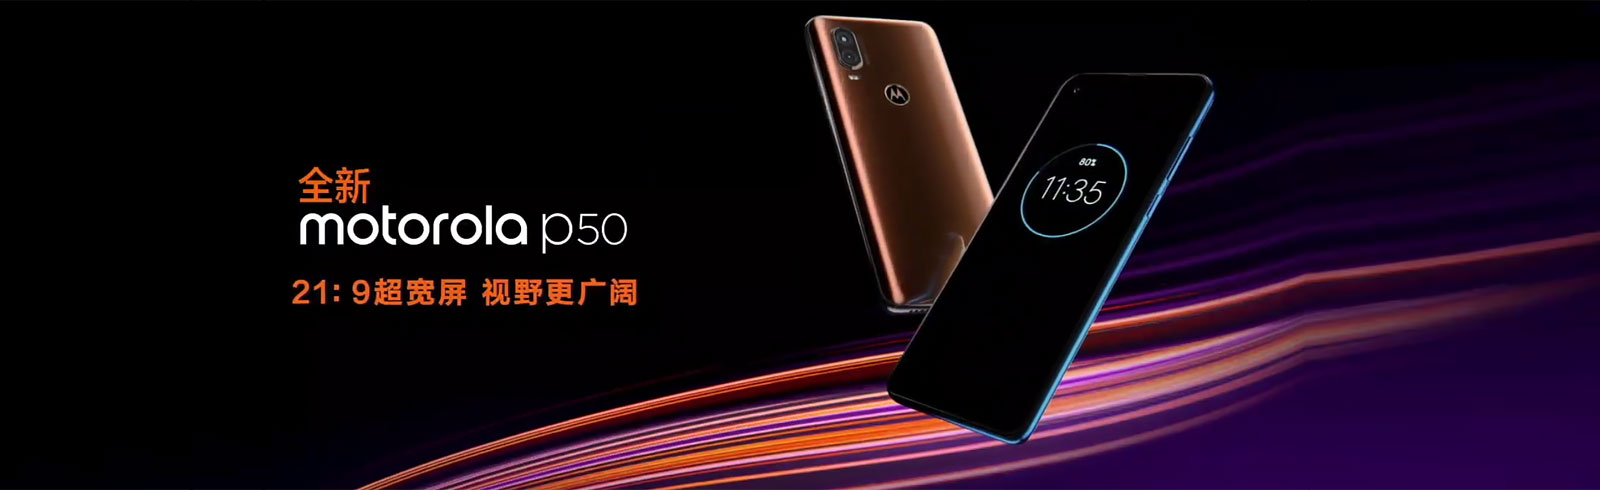 "Lenovo will unveil the Lenovo Z6 and Motorola P50 in a ""double C-debut"""